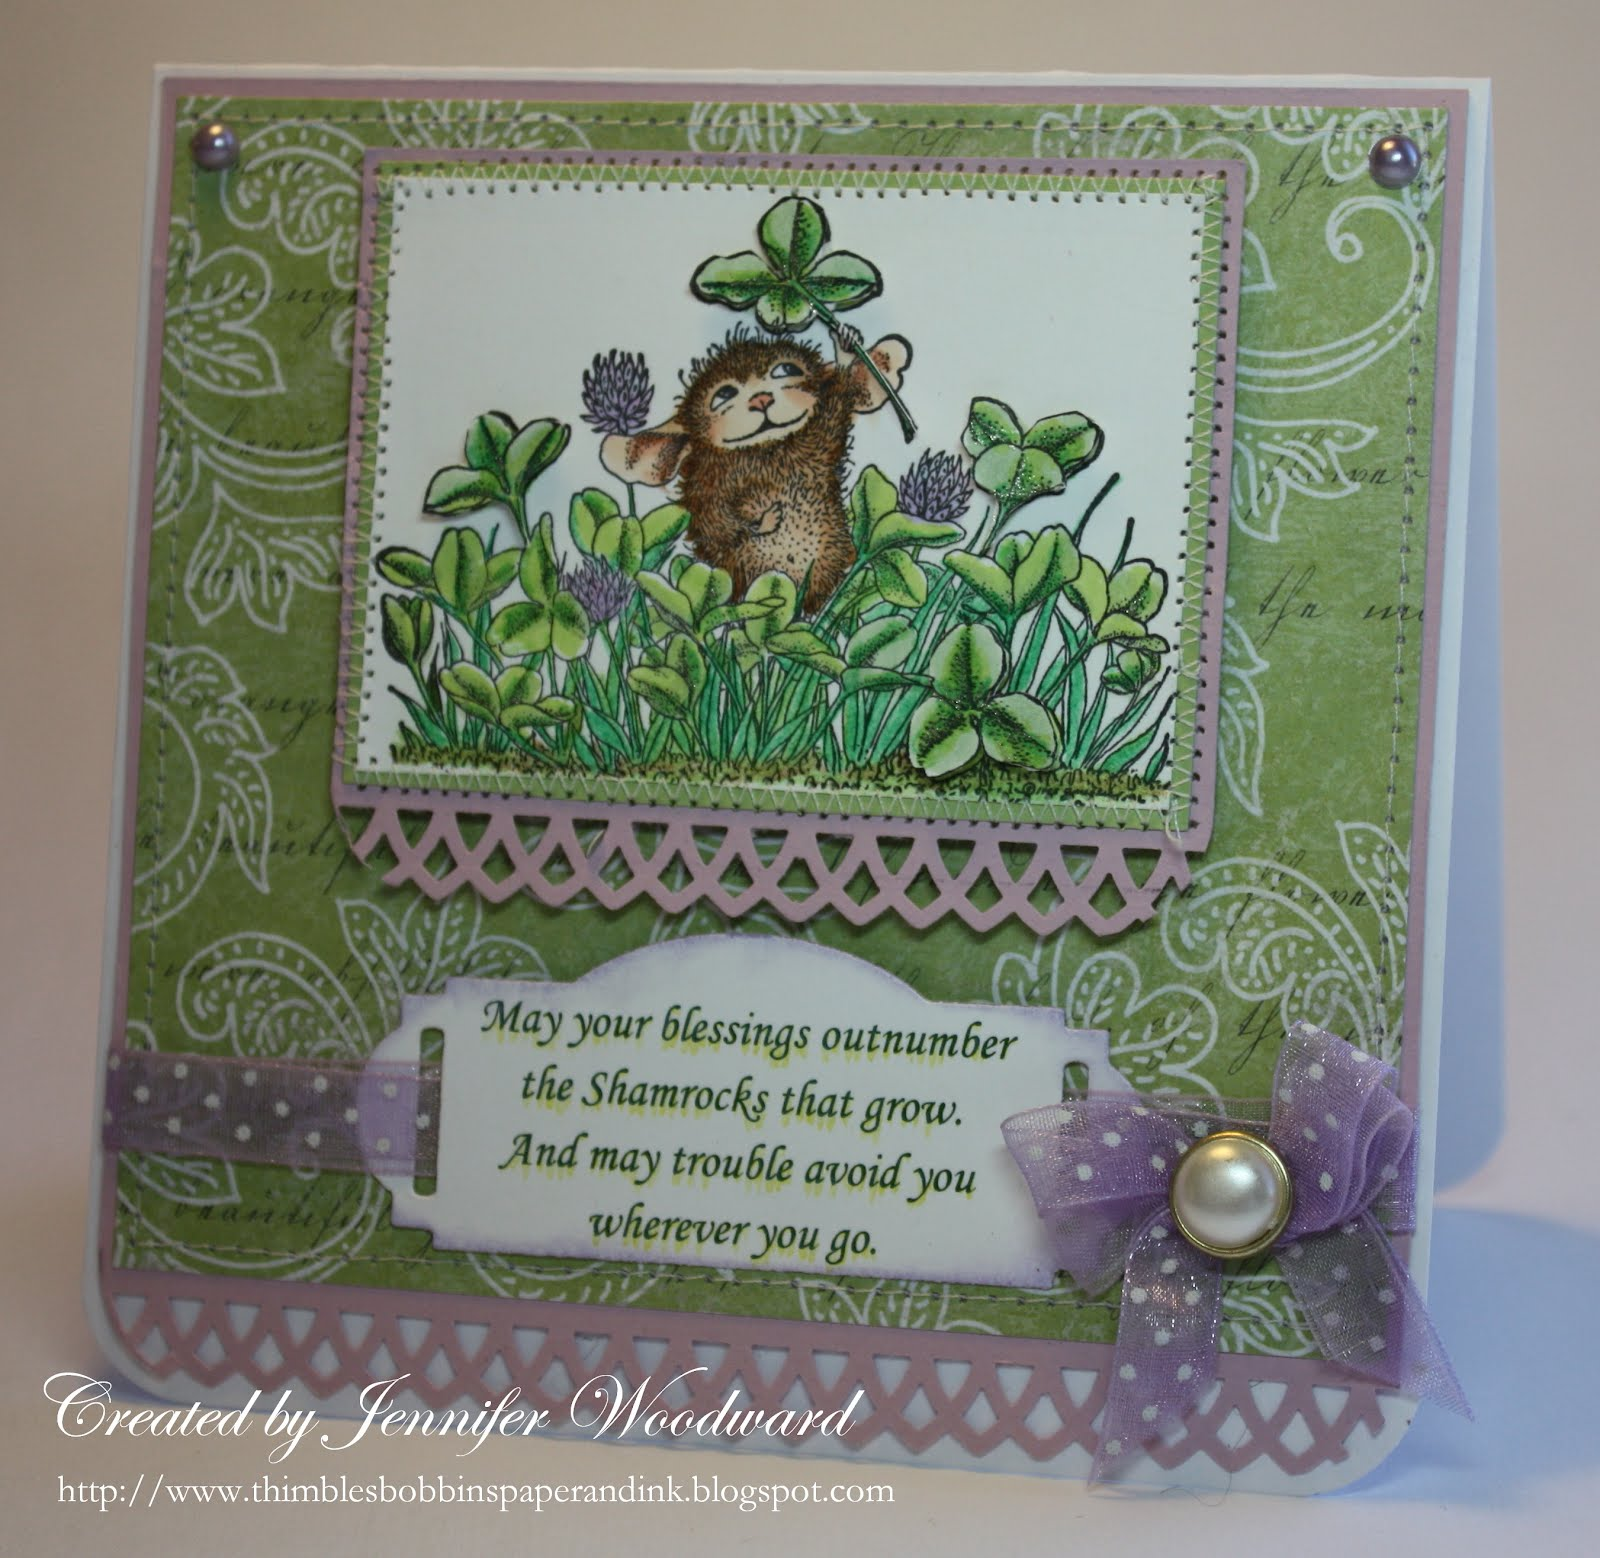 Thimbles, Bobbins, Paper and Ink: Make wishes come true: an